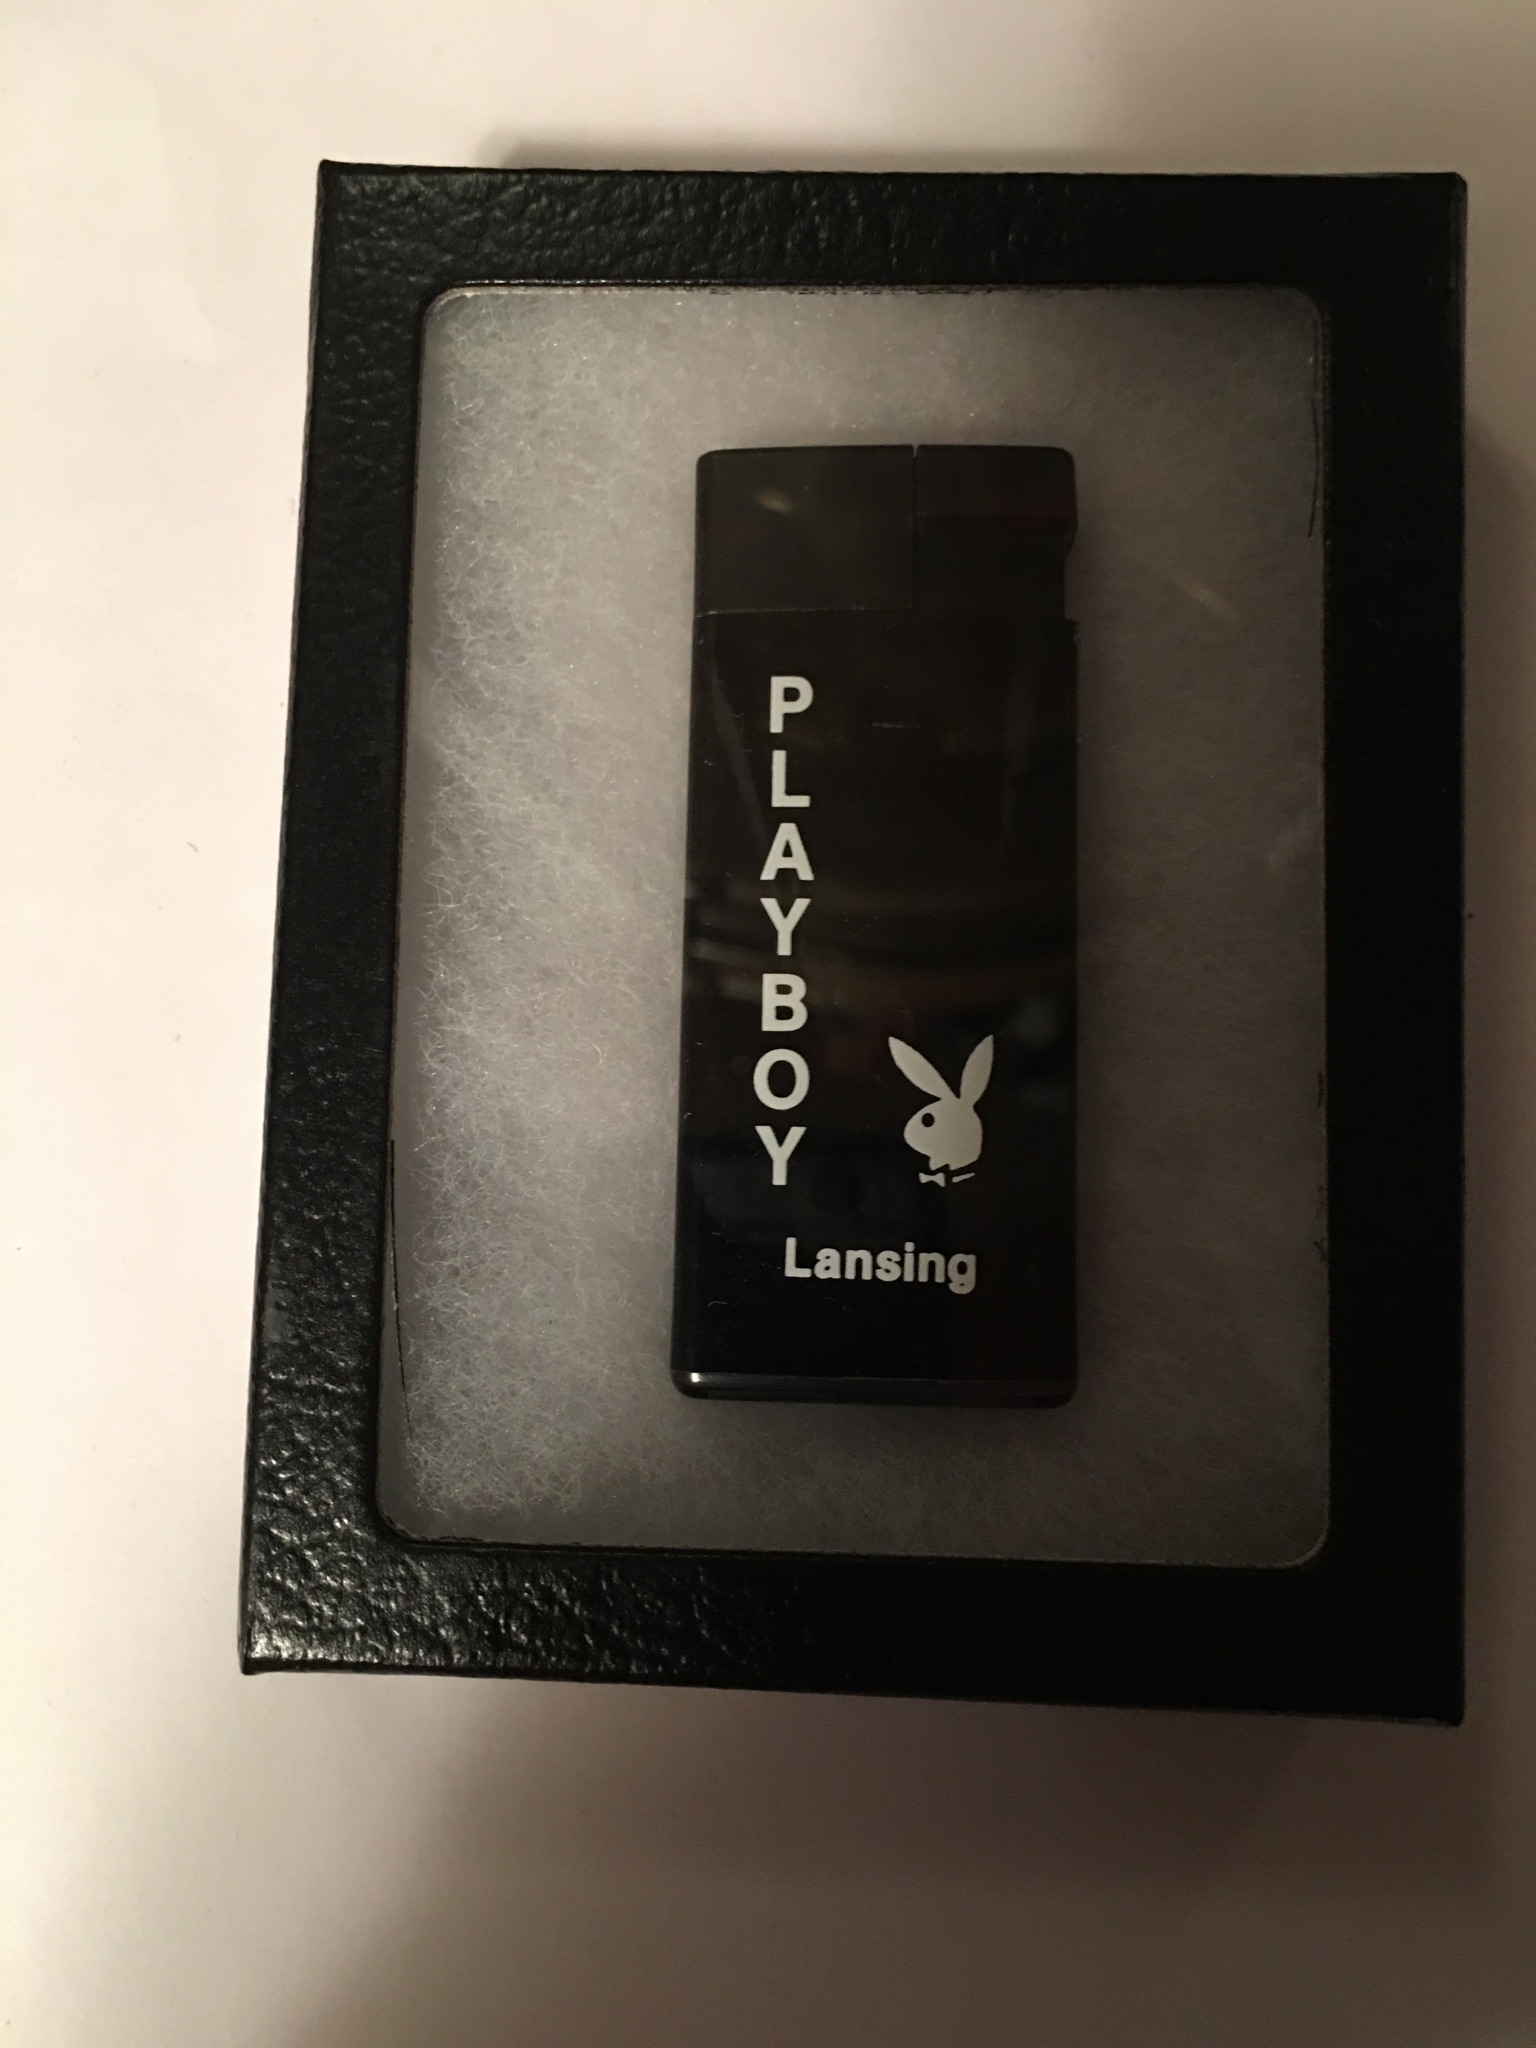 Playboy Club Lansing Lighter